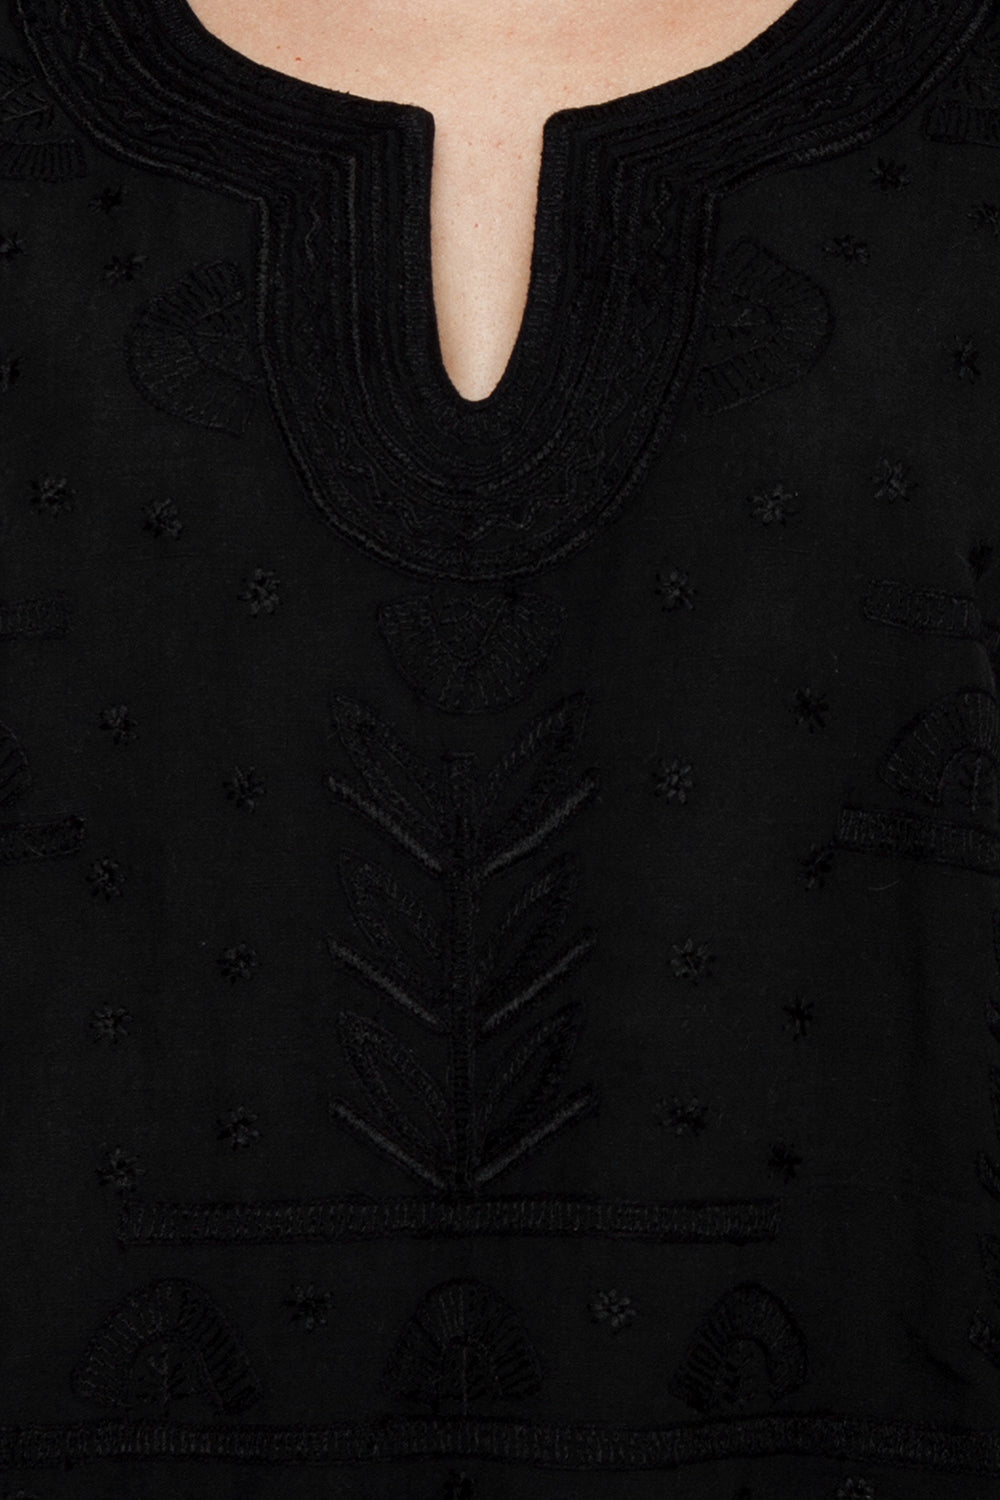 AMITA NAITHANI Riviera Embroidered Tunic - Black Cover Up | Black| Amita Naithani Riviera Embroidered Tunic - Black Black tunic V neckline Short sleeves Embroidered detail Detail View